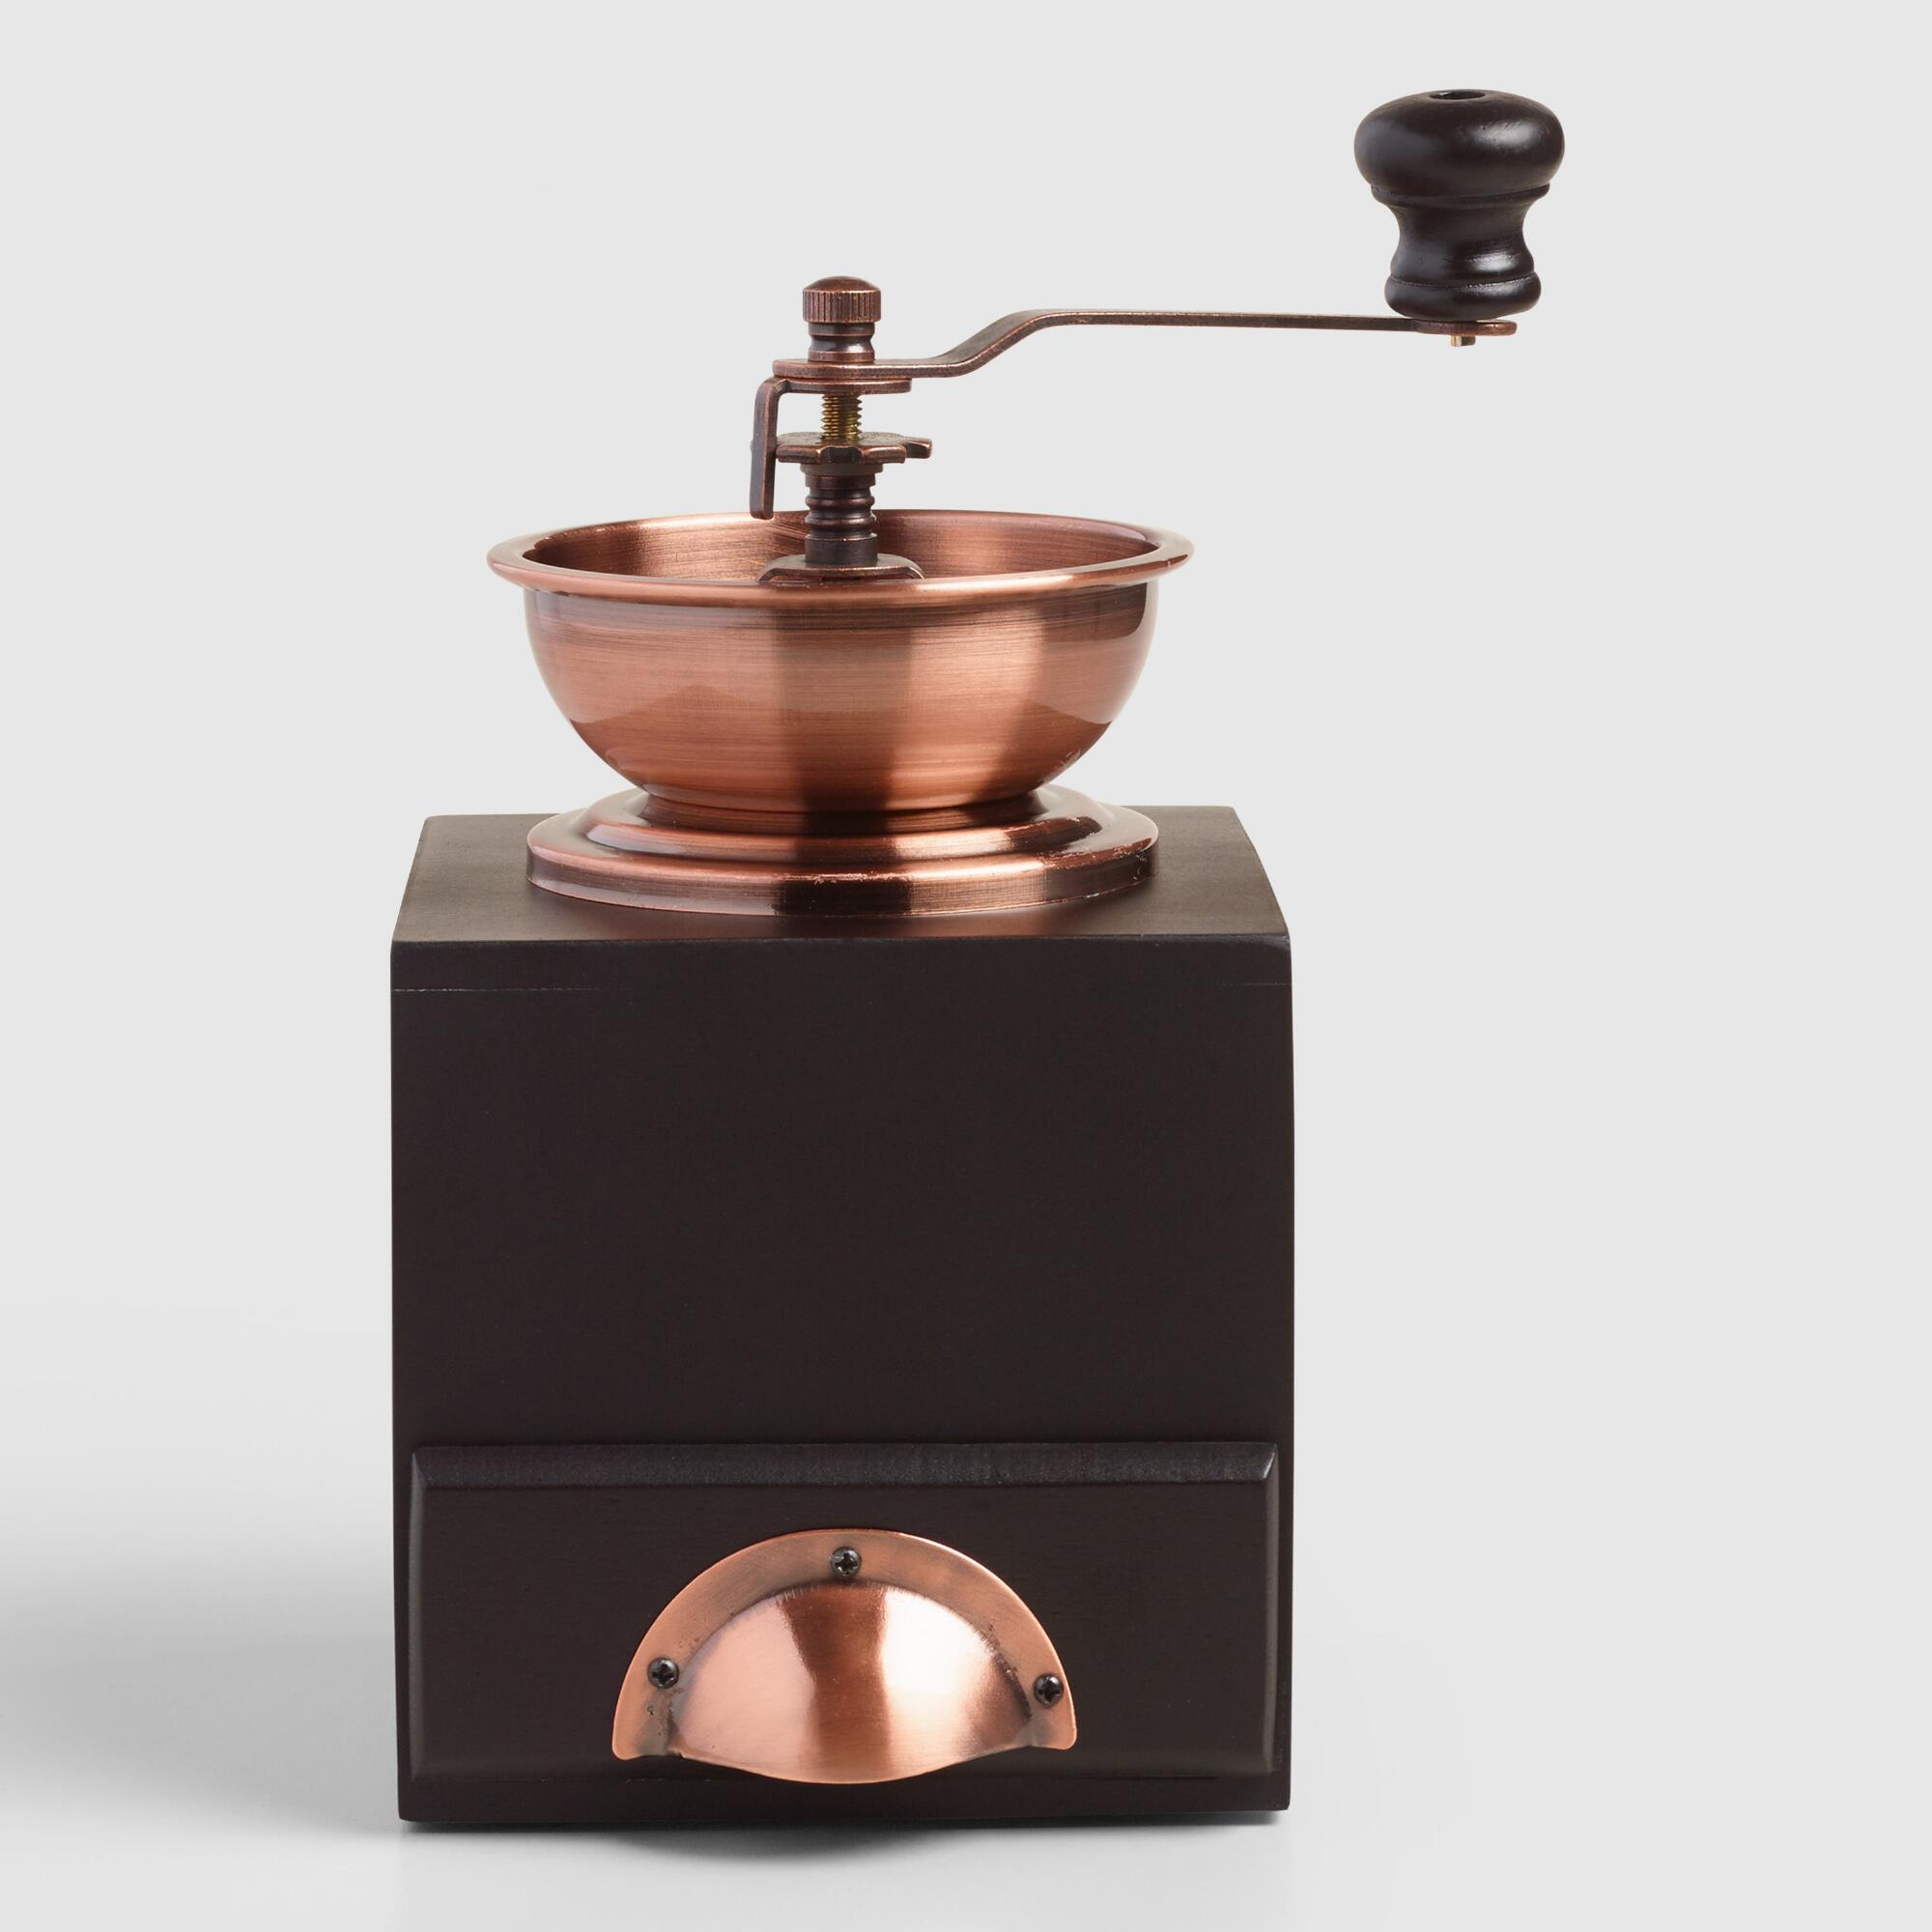 Old Coffee Grinders ~ Copper vintage style burr coffee grinder world market